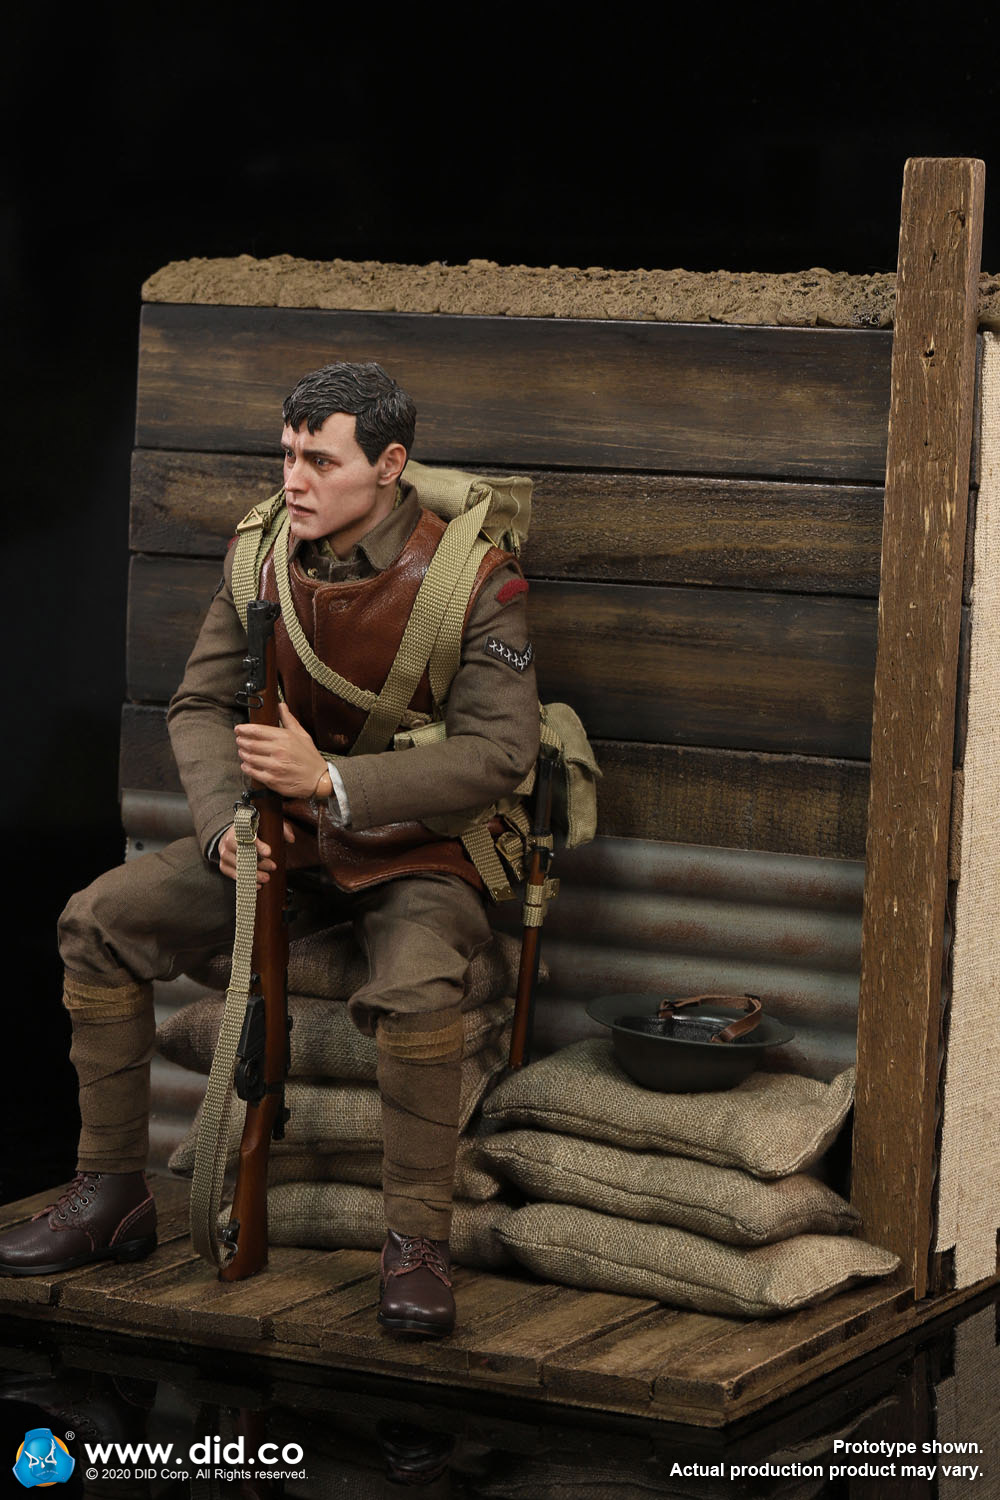 military - NEW PRODUCT: DiD: B11011 WWI British Infantry Lance Corporal William & Trench Diorama Set (UPDATED INFORMATION) 6362